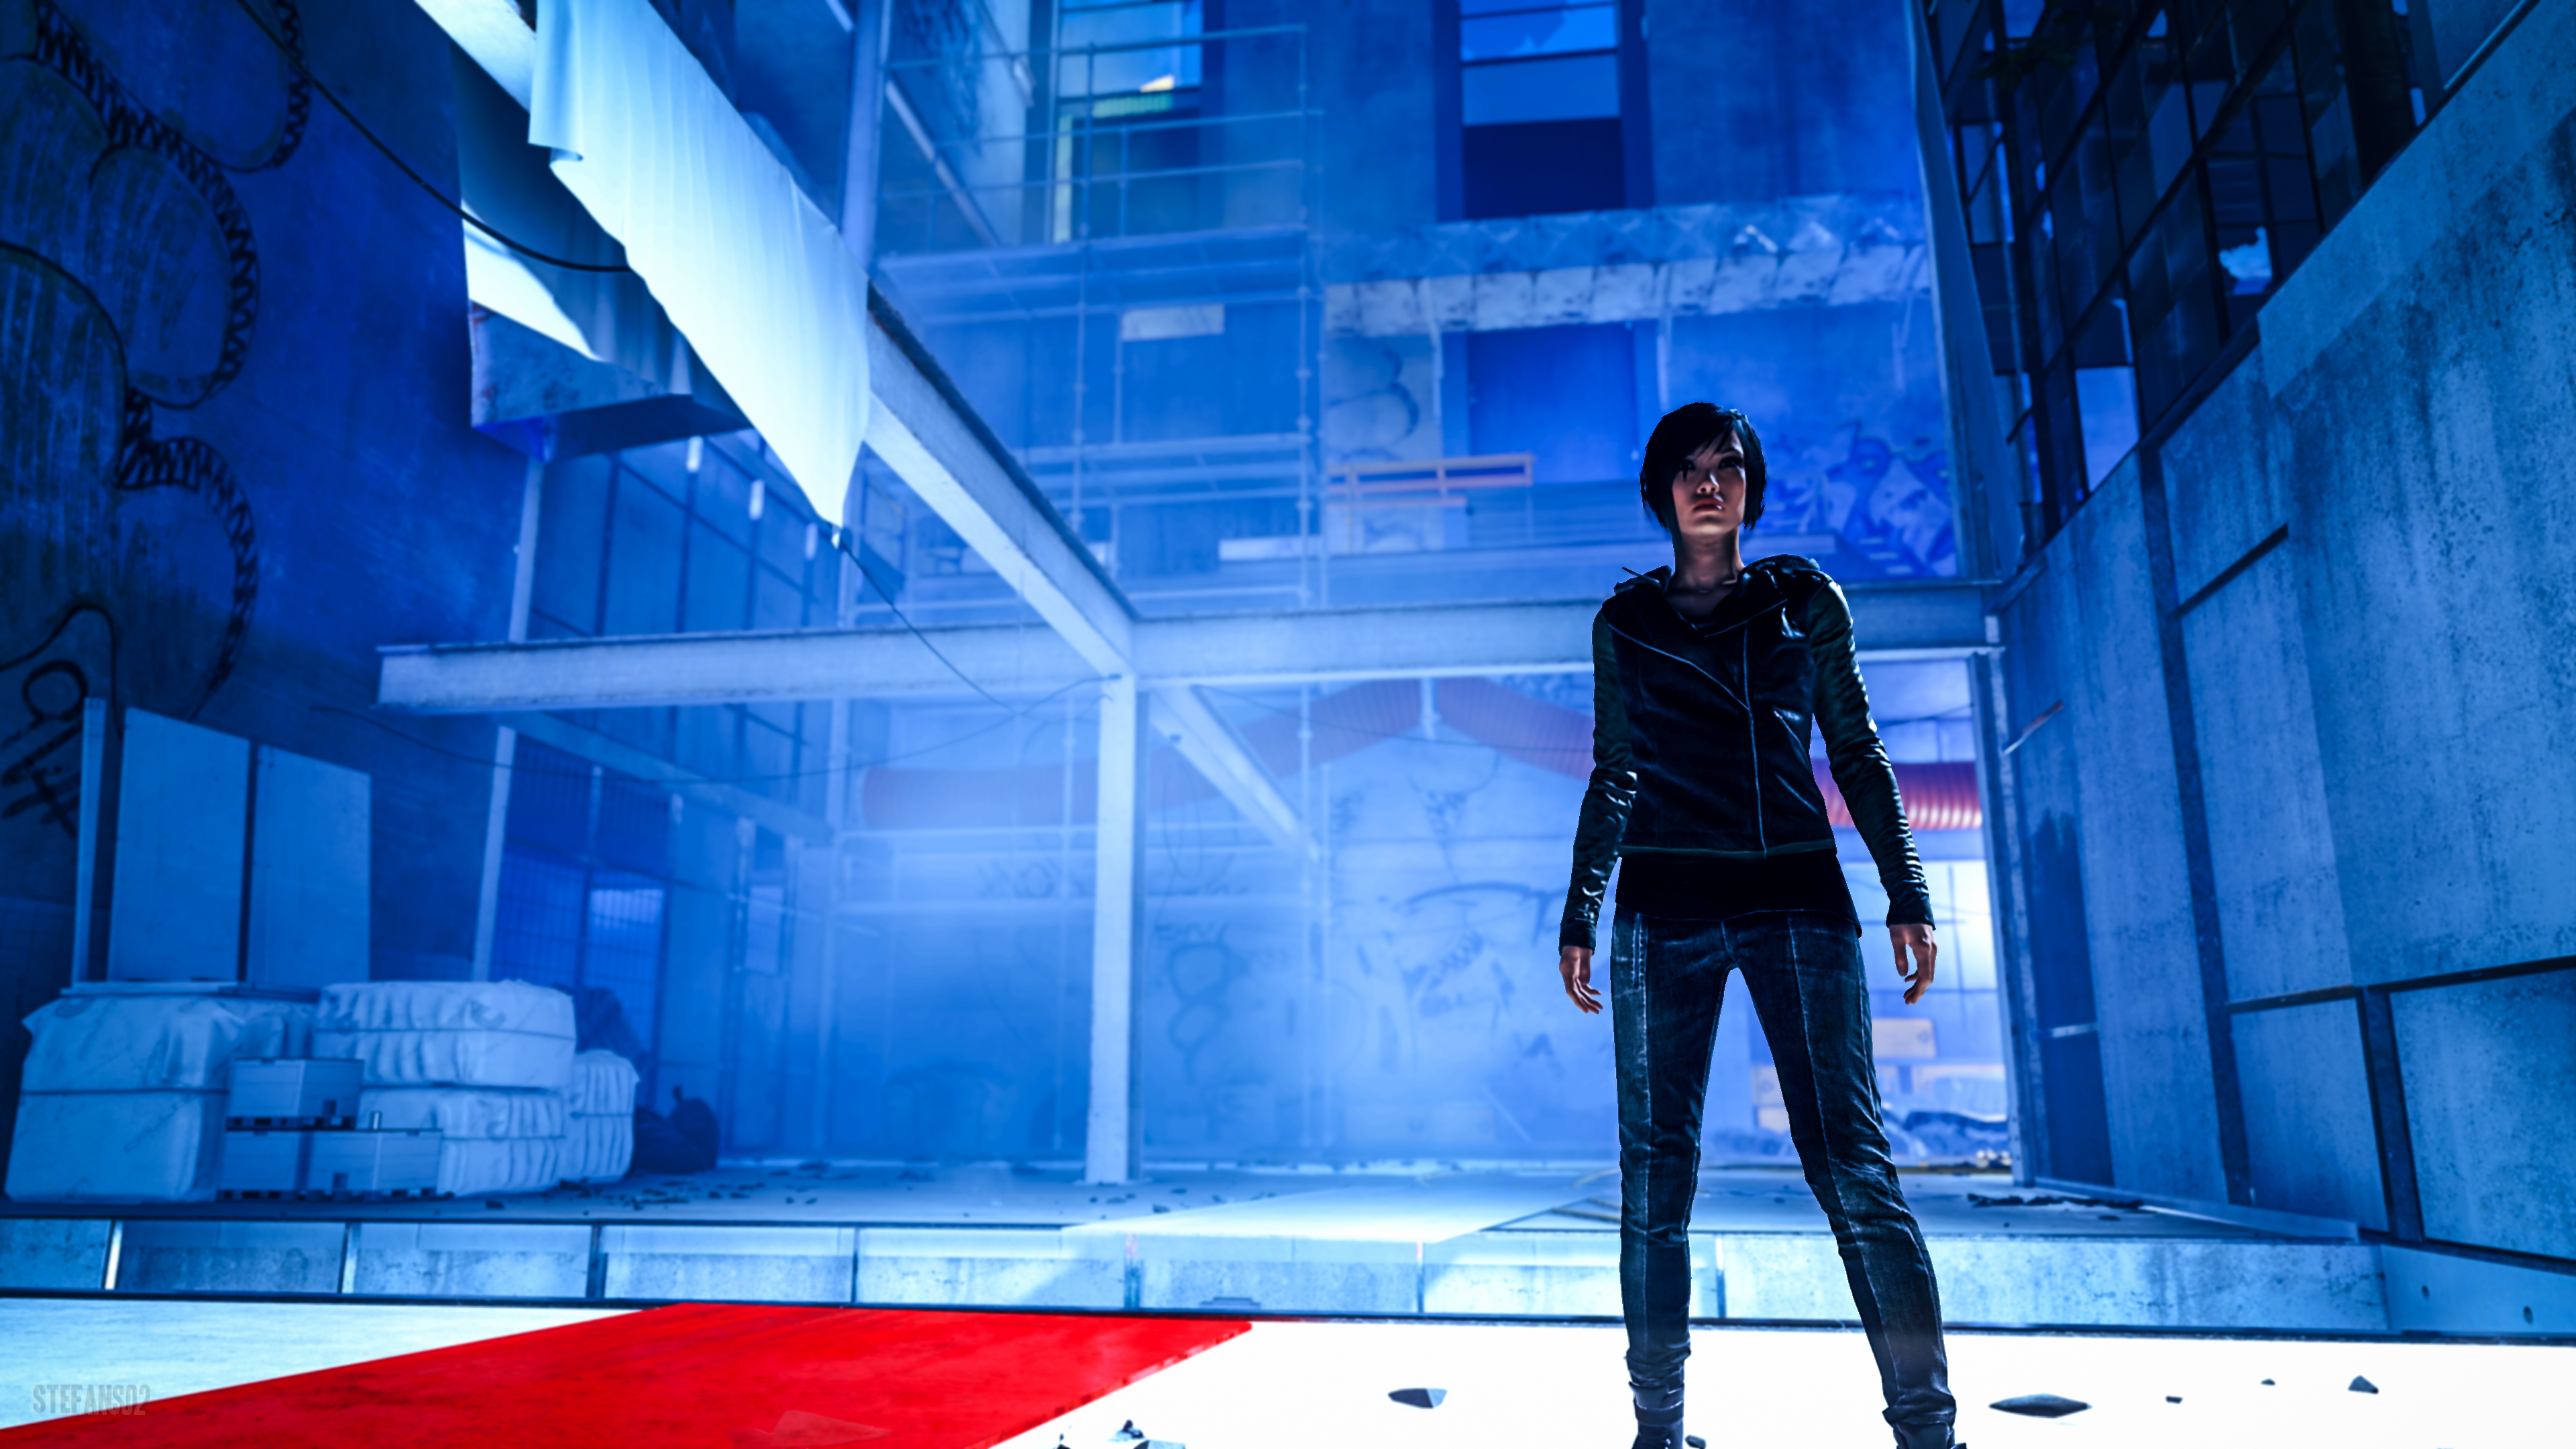 4k Mirrors Edge Catalyst 2018 Hd Games 4k Wallpapers Images